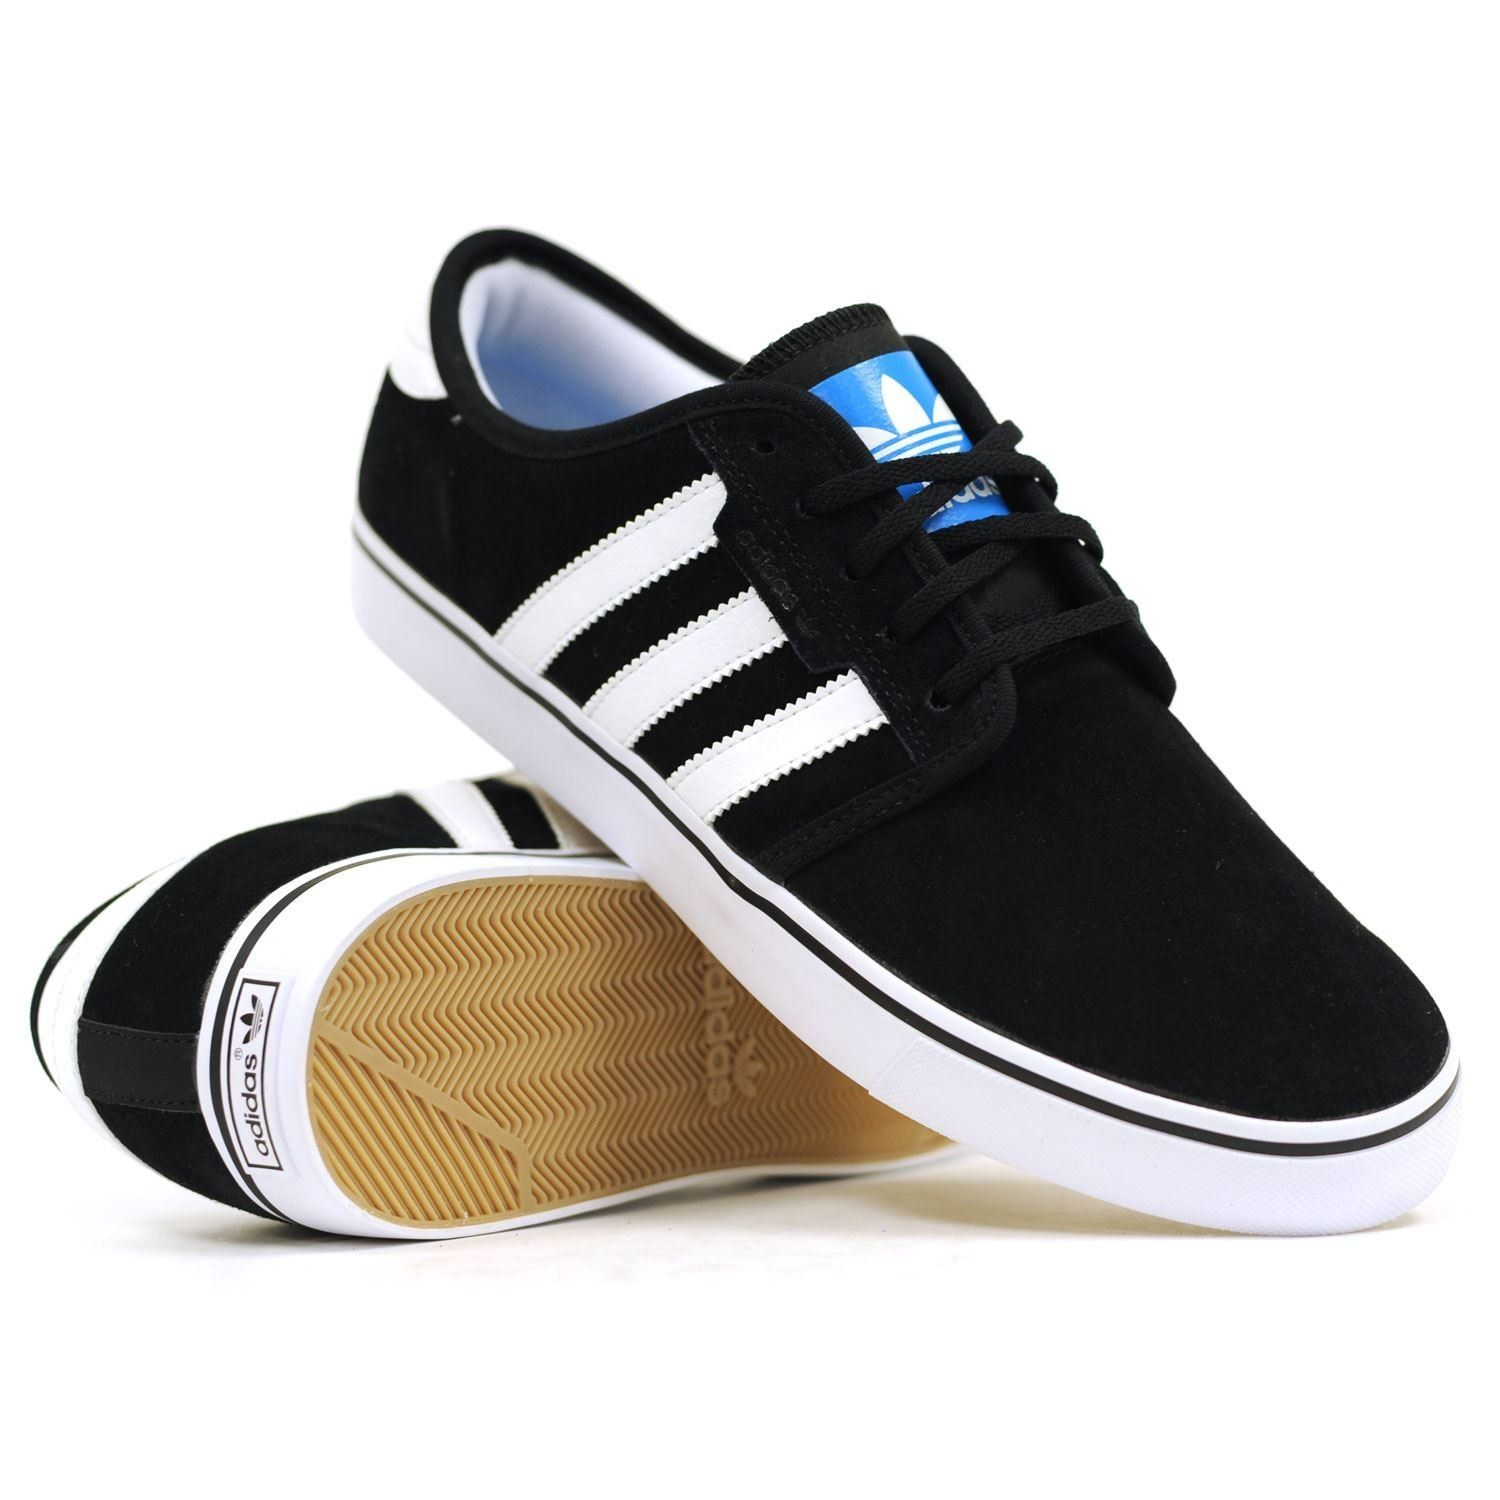 Adidas Seeley Mens Skate Shoes - DOPE | shoes | Nike shoes ...